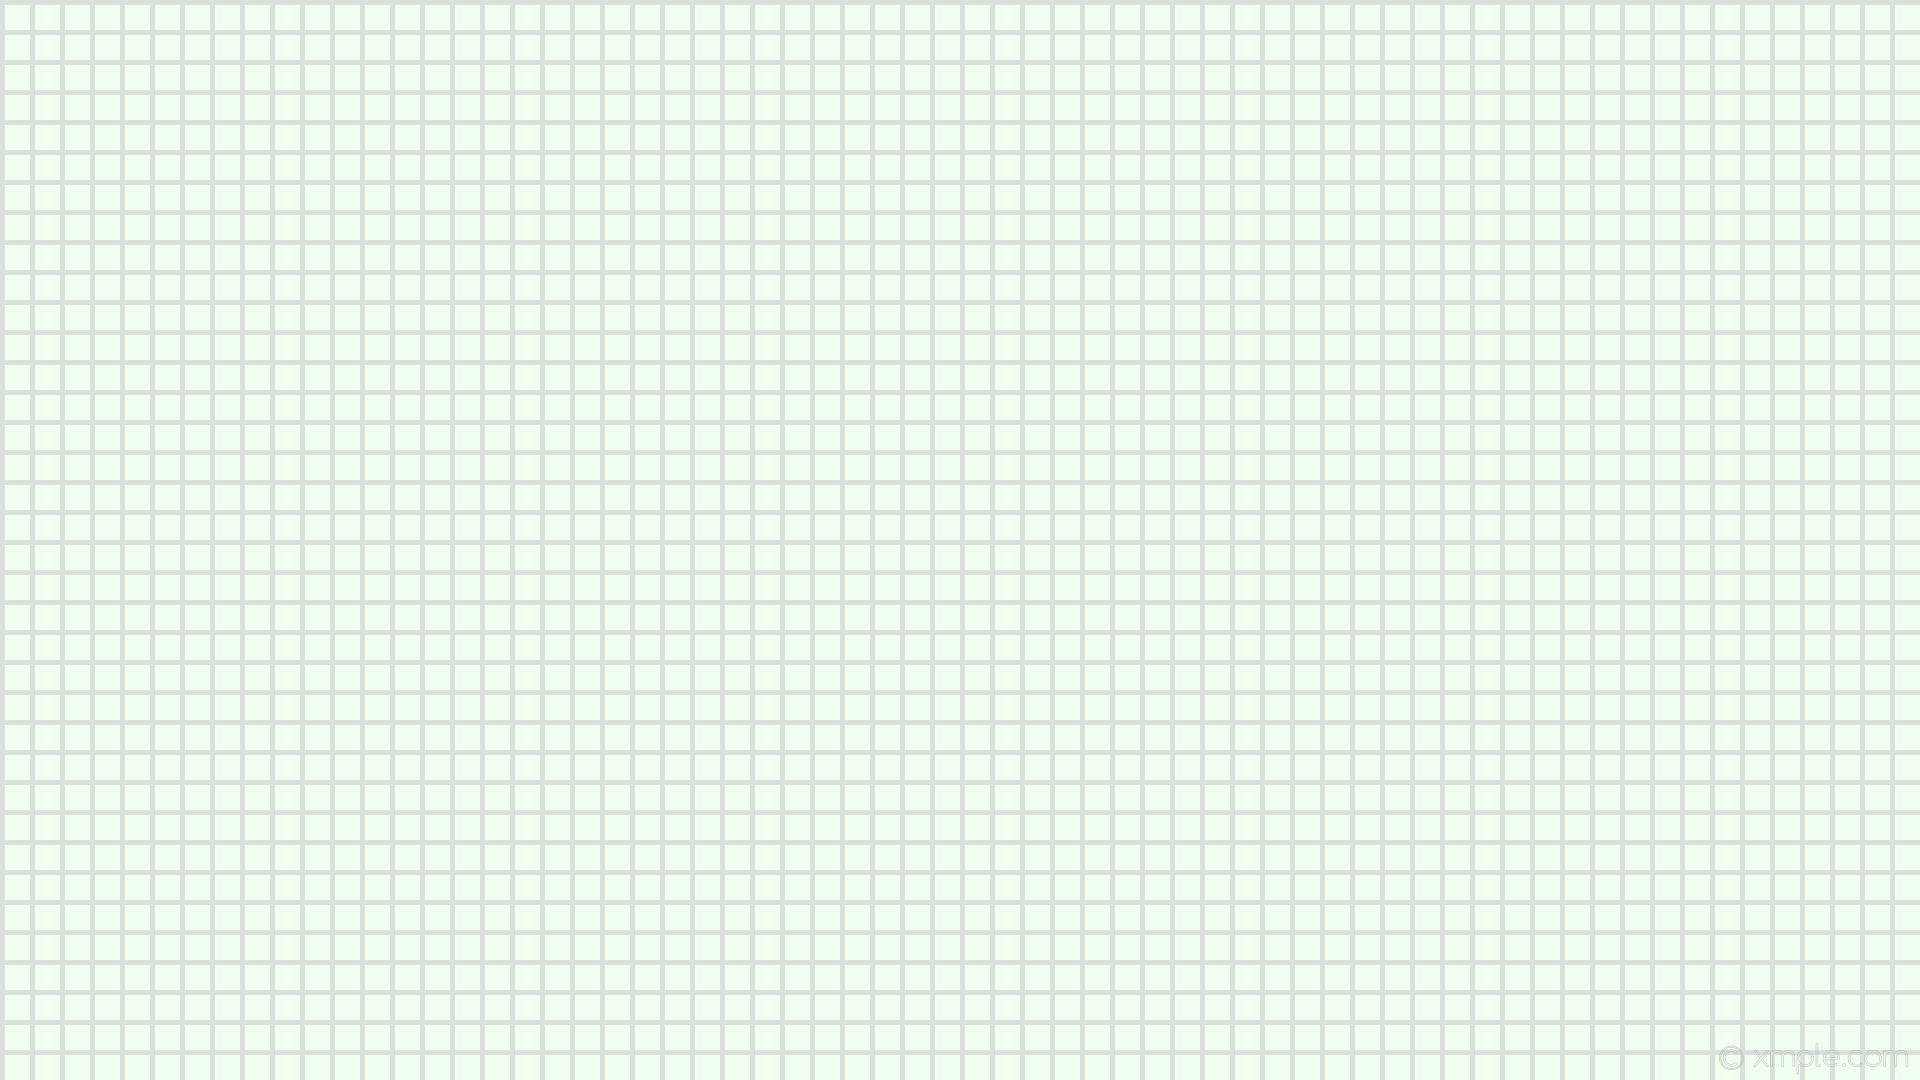 1920x1080 wallpaper graph paper white grid grey honeydew light gray #f0fff0 #d3d3d3  0° 5px